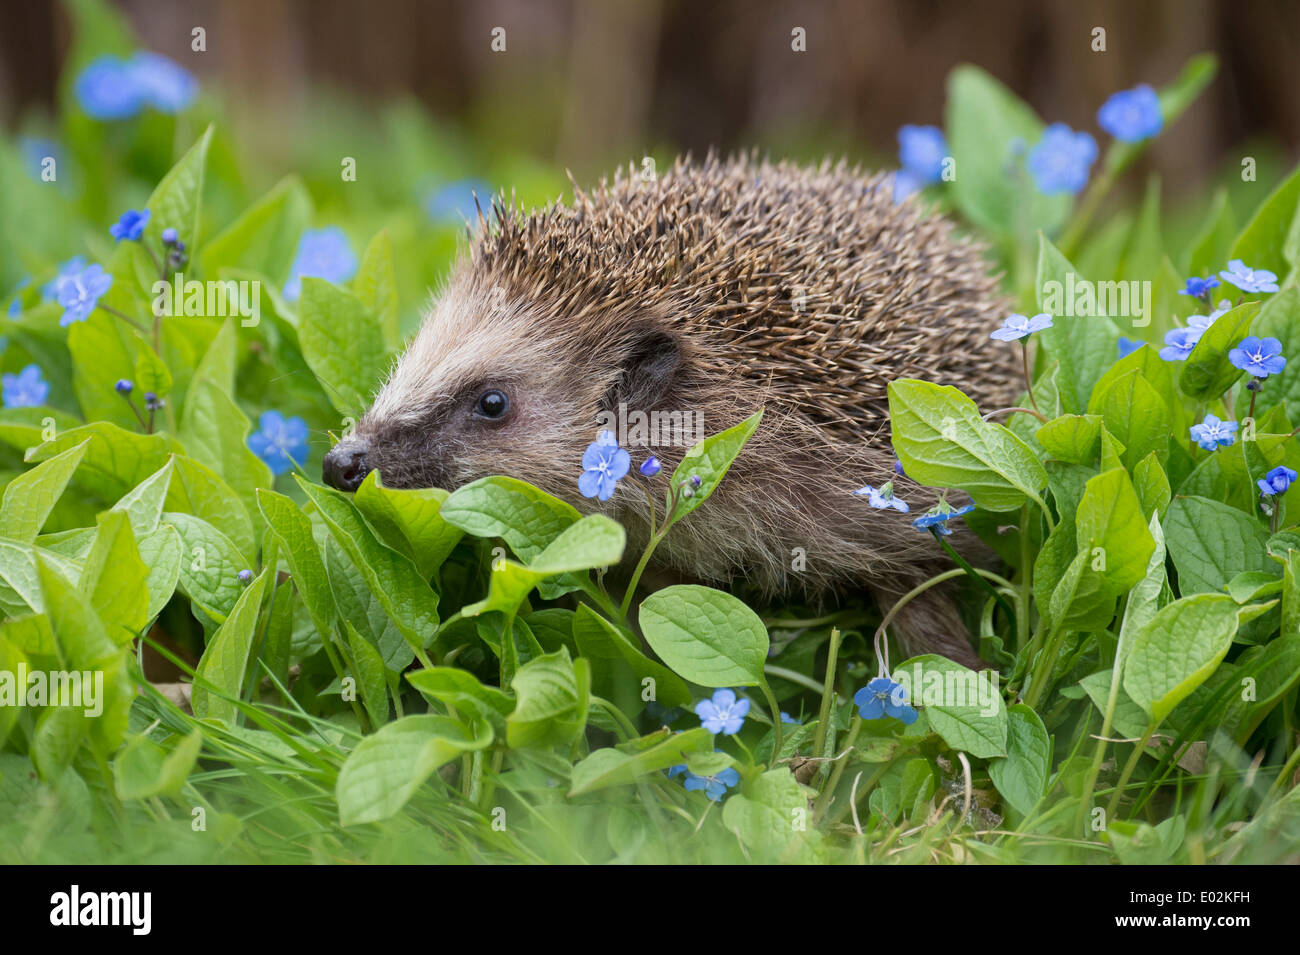 european hedgehog, erinaceus europaeus, germany - Stock Image